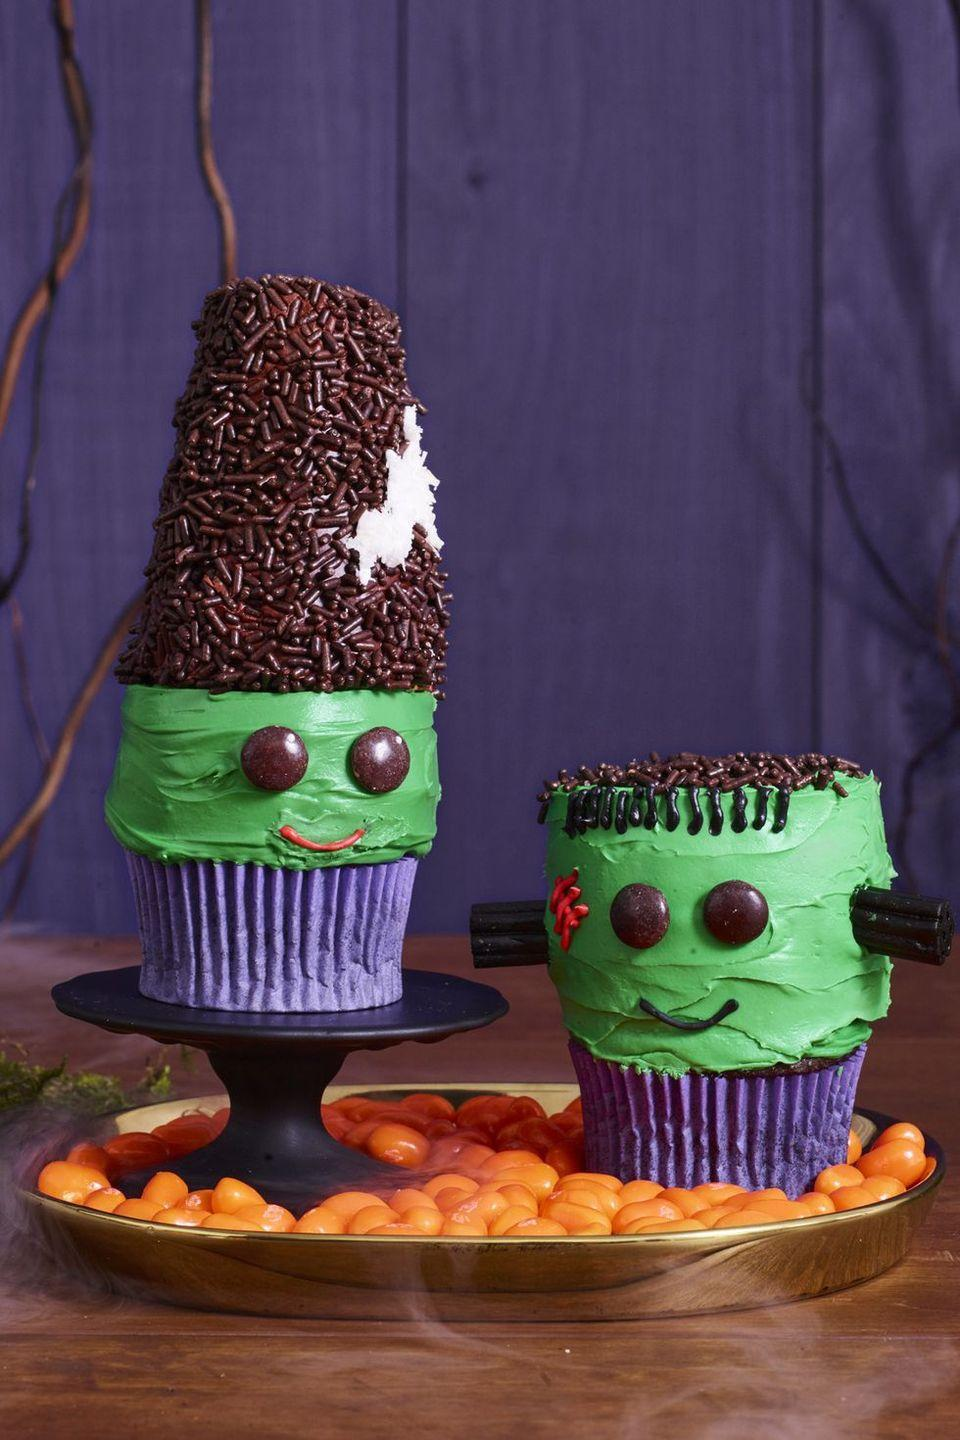 """<p>Your kids will love adding the black licorice neck knobs and chocolate sprinkle hair to these treats.</p><p><strong><em><a href=""""https://www.womansday.com/food-recipes/food-drinks/a23570068/frankenstein-and-his-bride-cupcakes-recipe/"""" rel=""""nofollow noopener"""" target=""""_blank"""" data-ylk=""""slk:Get the Frankenstein and His Bride Cupcakes recipe."""" class=""""link rapid-noclick-resp"""">Get the Frankenstein and His Bride Cupcakes recipe. </a></em></strong></p>"""